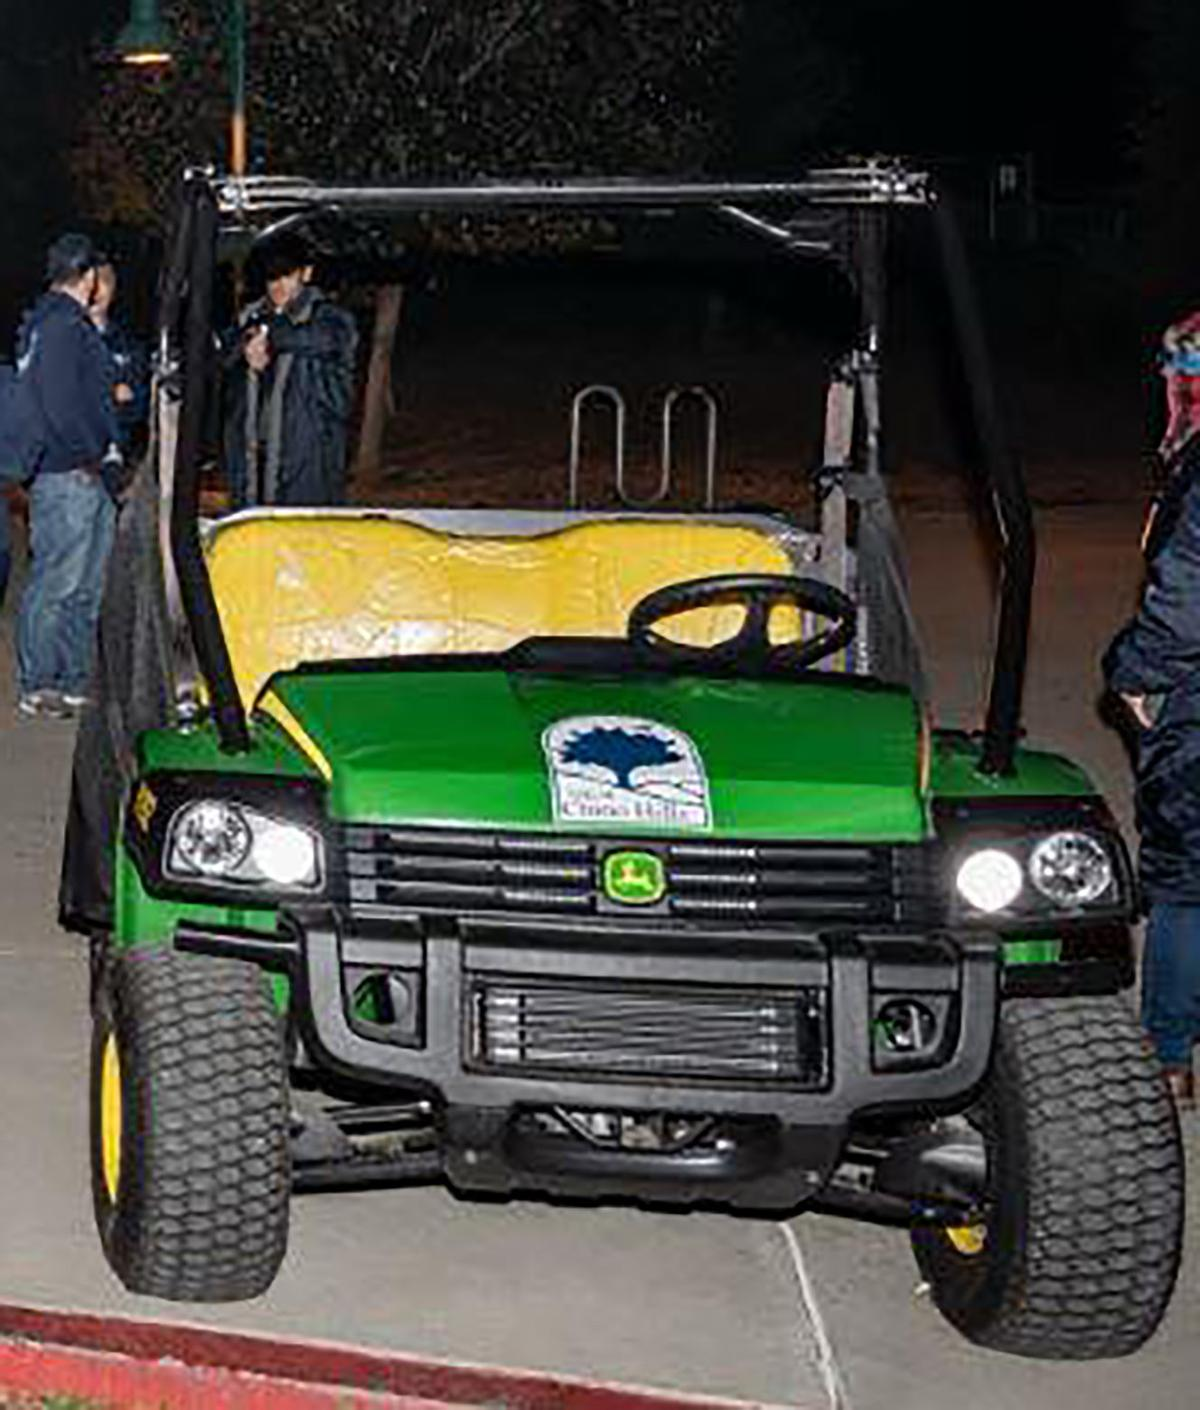 Suspect in Chino Hills Community Park burglary arrested Thursday in Brea; stolen items recovered